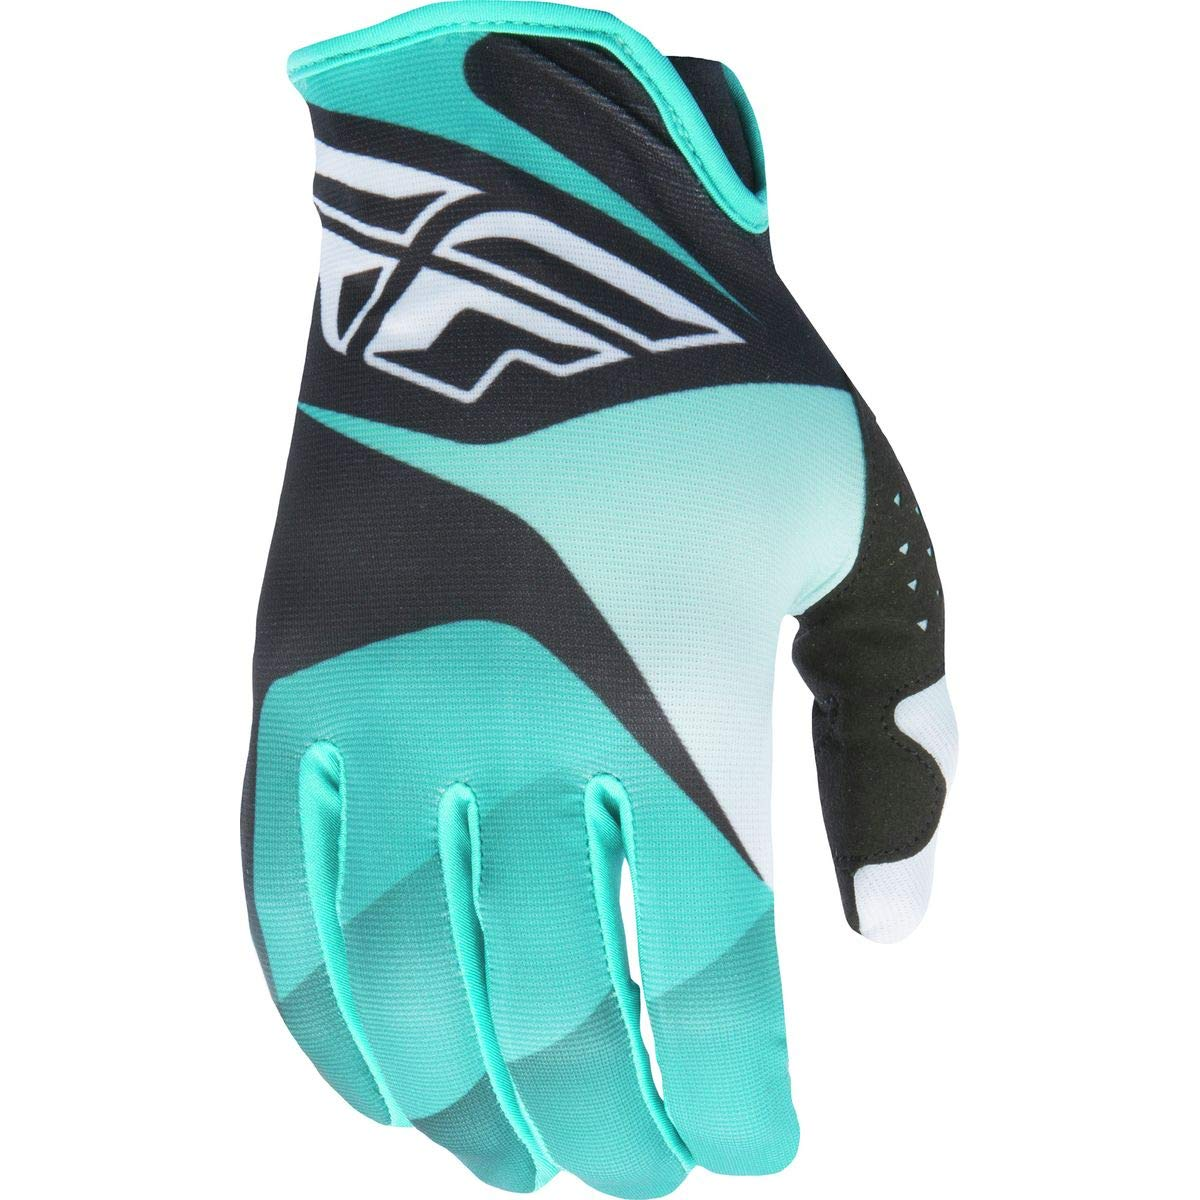 Fly Racing Unisex-Adult Lite Gloves Black//White//Teal XXX-Large 370-01013